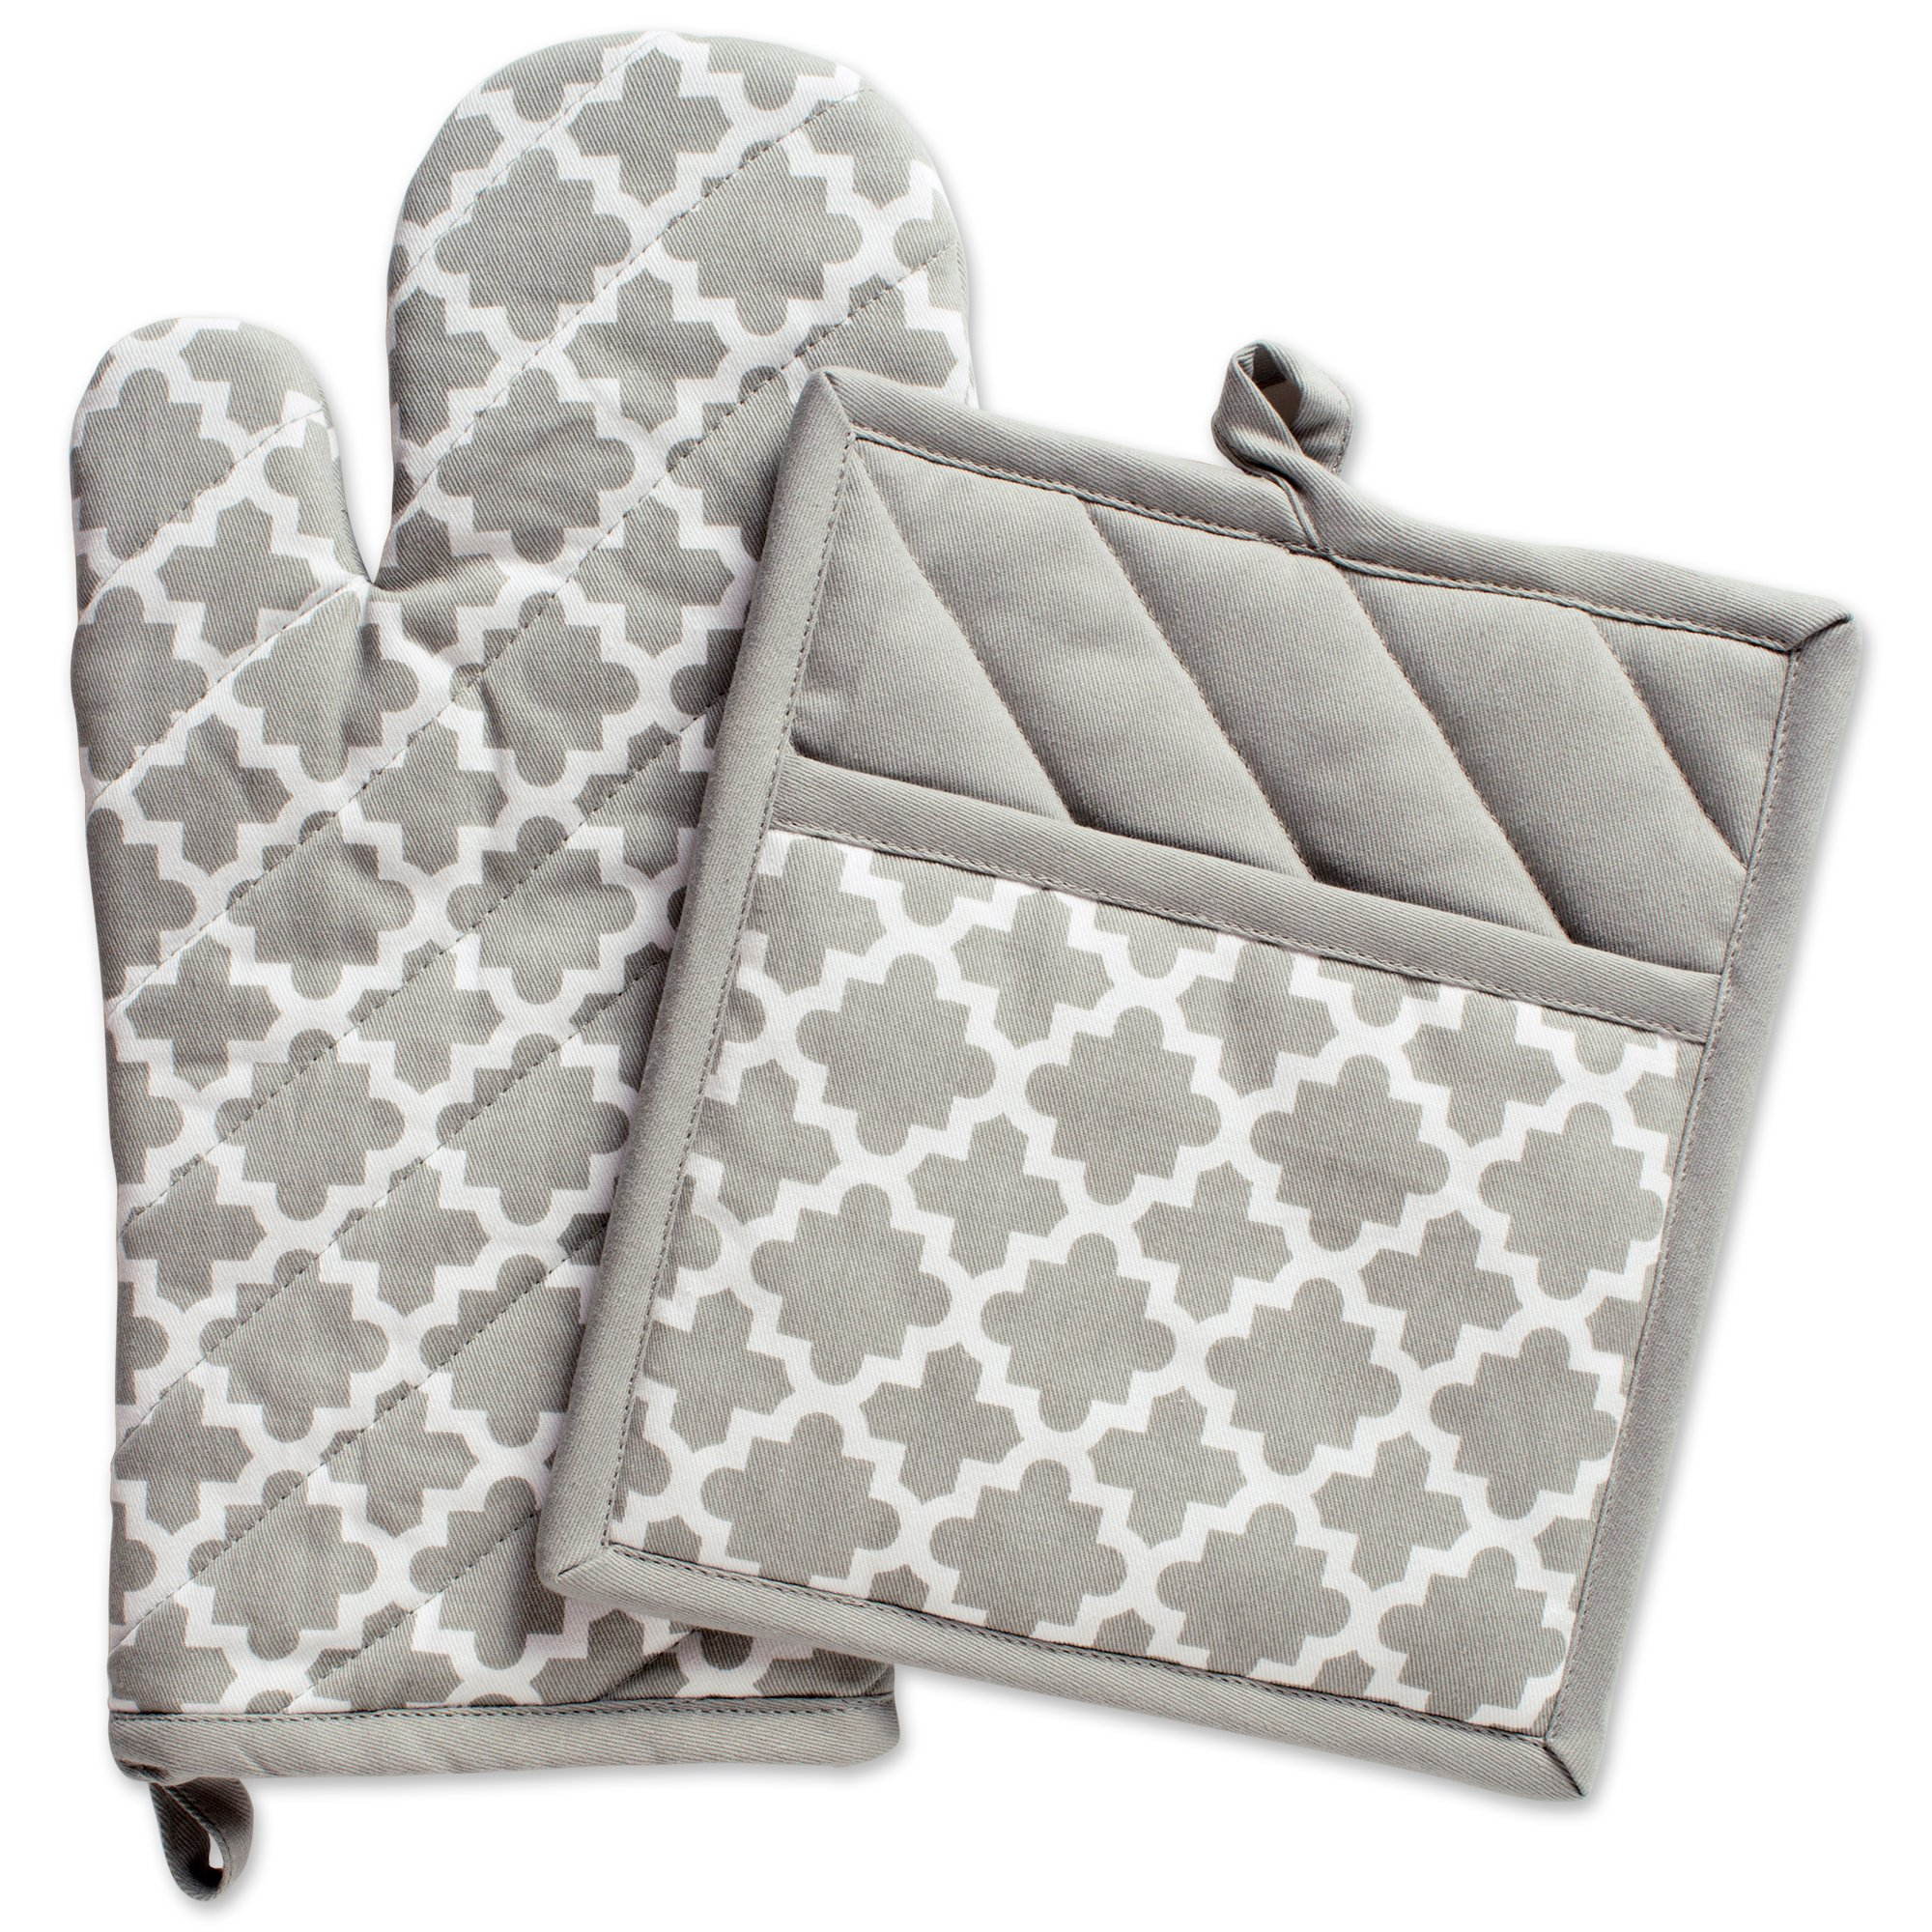 """DII Cotton Lattice Oven Mitt 13 x 7"""" and  Pot Holder 9 x 8"""" Kitchen Gift Set, Machine Washable and Heat Resistant for Cooking & Baking-Gray"""